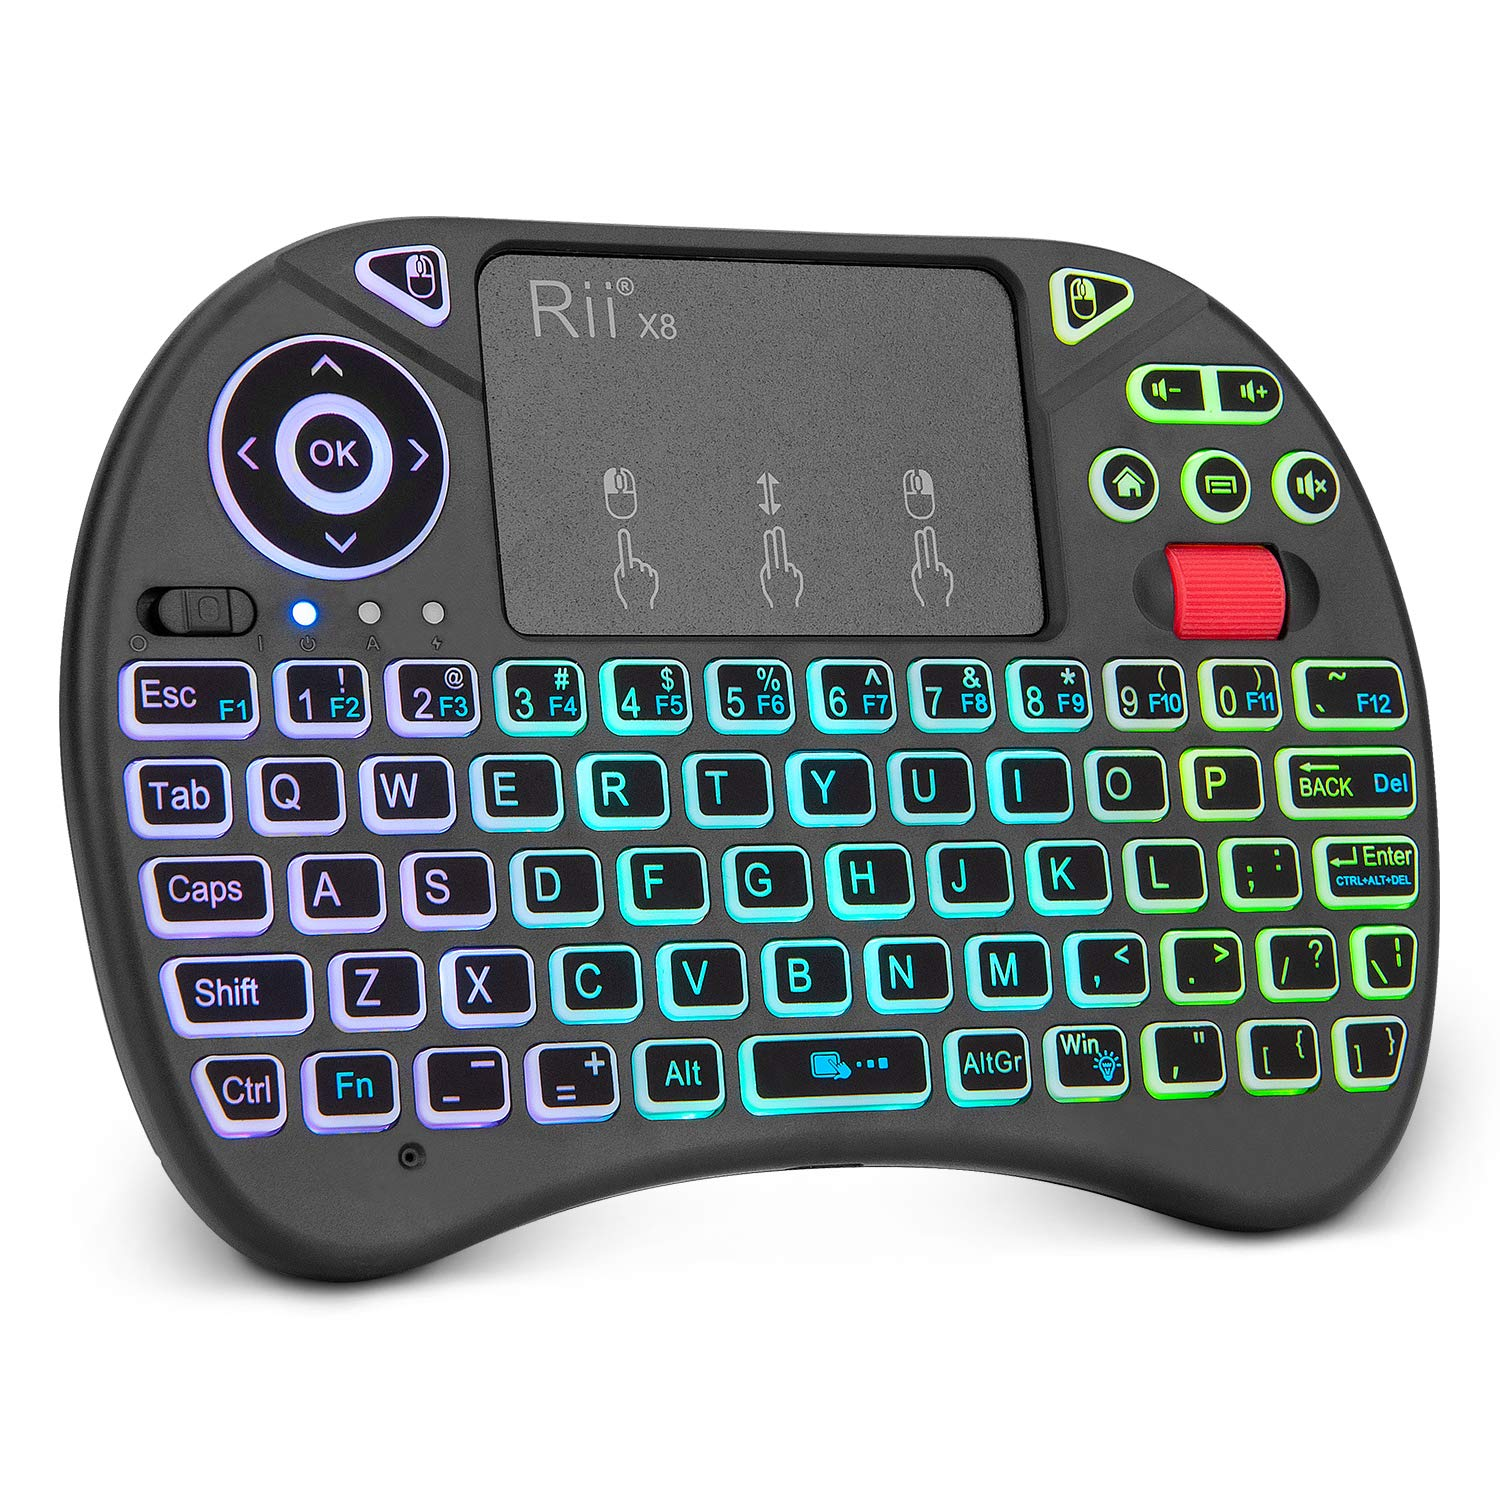 ab0e0bf835d Mini Keyboard,Rii X8 Portable 2.4GHz Mini Wireless Keyboard Controller with  Touchpad Mouse Combo,8 Colors RGB Backlit,Rechargeable Li-ion Battery for  Google ...